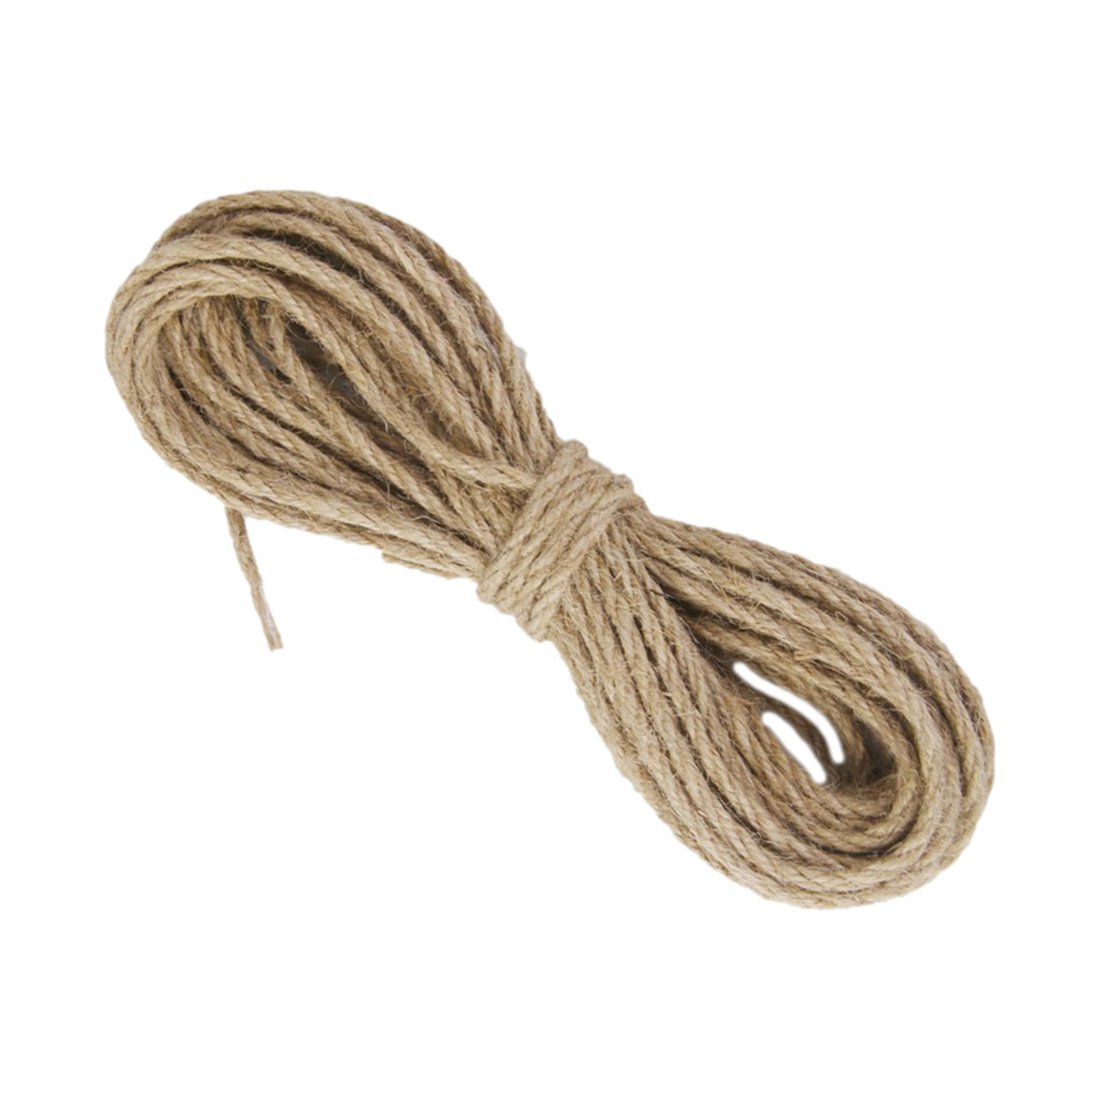 VSEN 10m Natural Hemp cord Jute cord Sisal rope 3mm cord sack